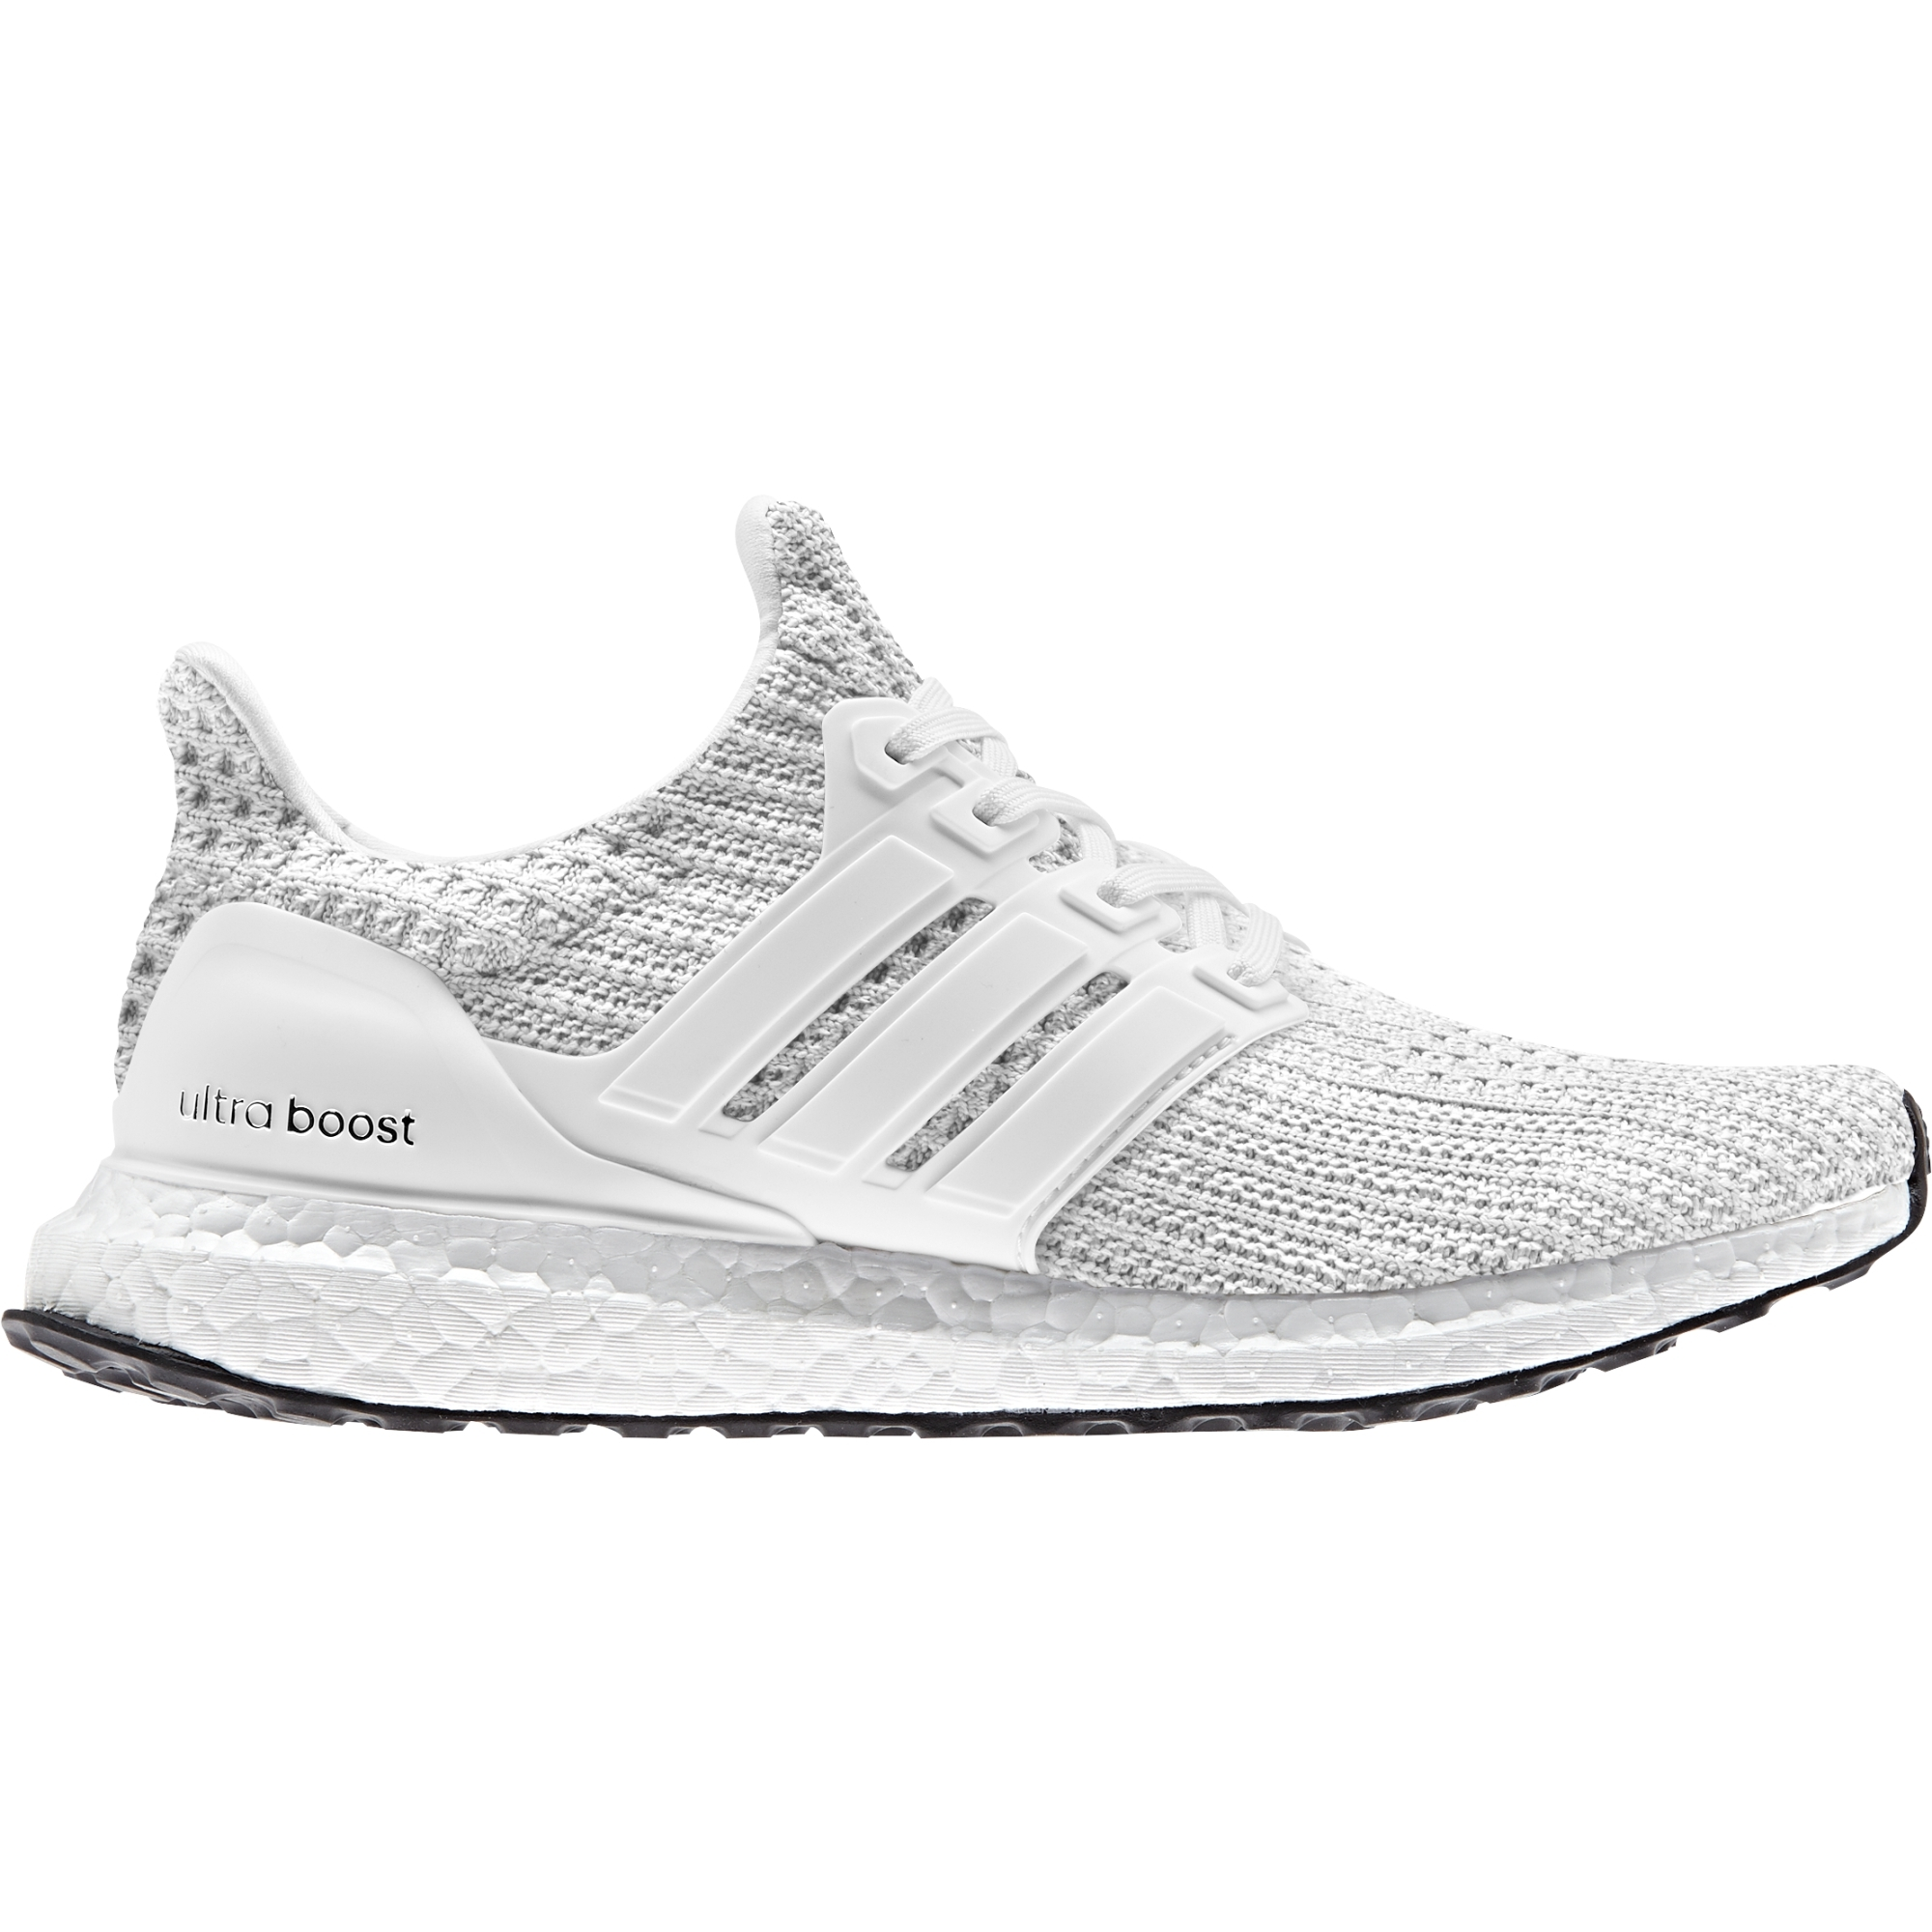 adidas Women's Ultra Boost Shoes